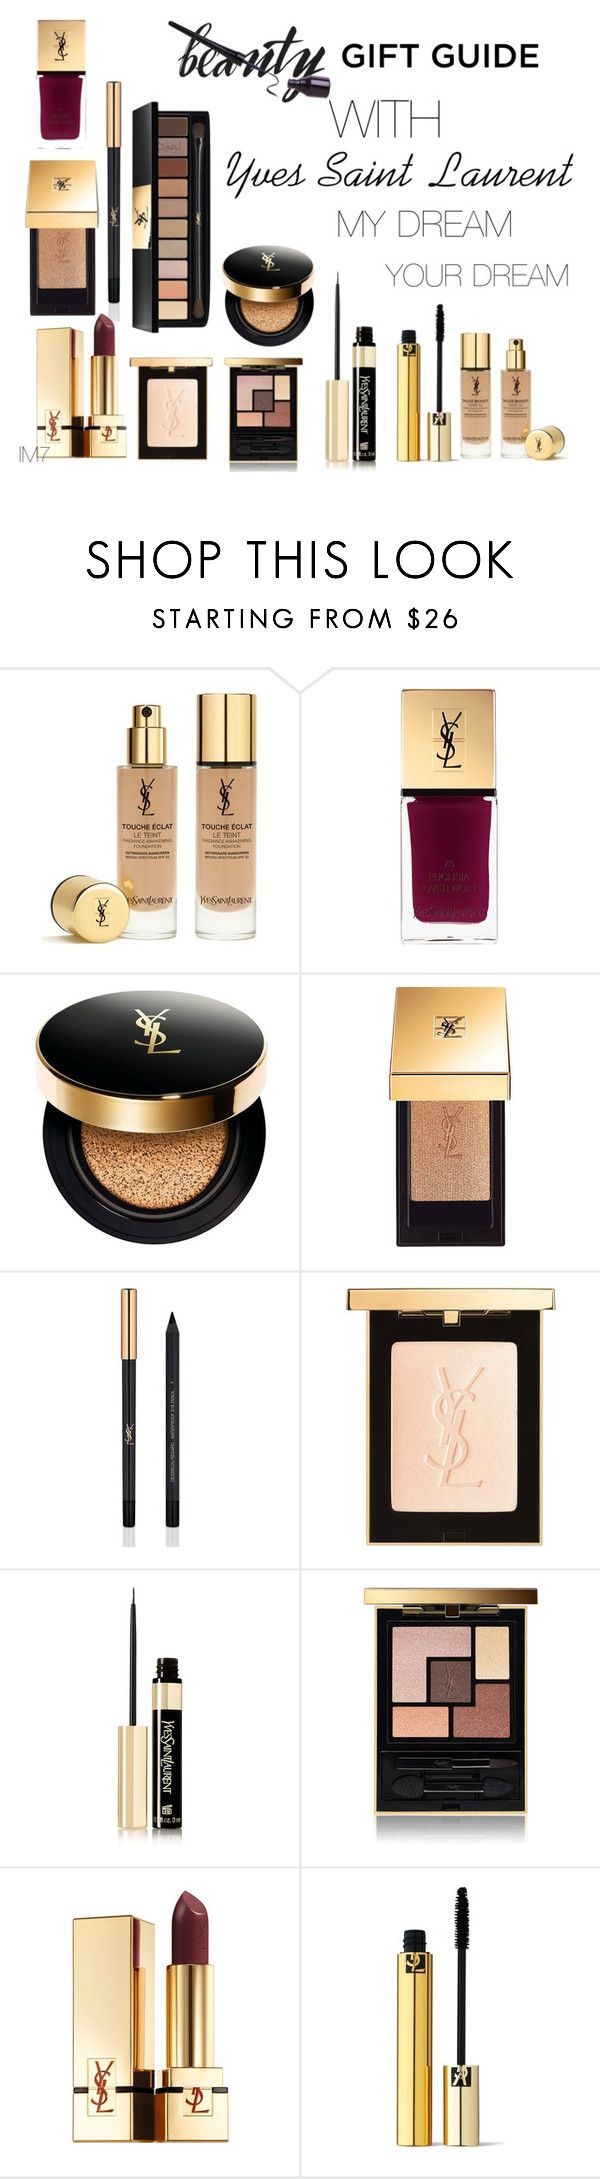 """""""Holiday Gift Guide: Beauty Dream with Yves Saint Laurent by IM7"""" by ilaria-m7 ❤ liked on Polyvore featuring Yves Saint Laurent and giftguide"""